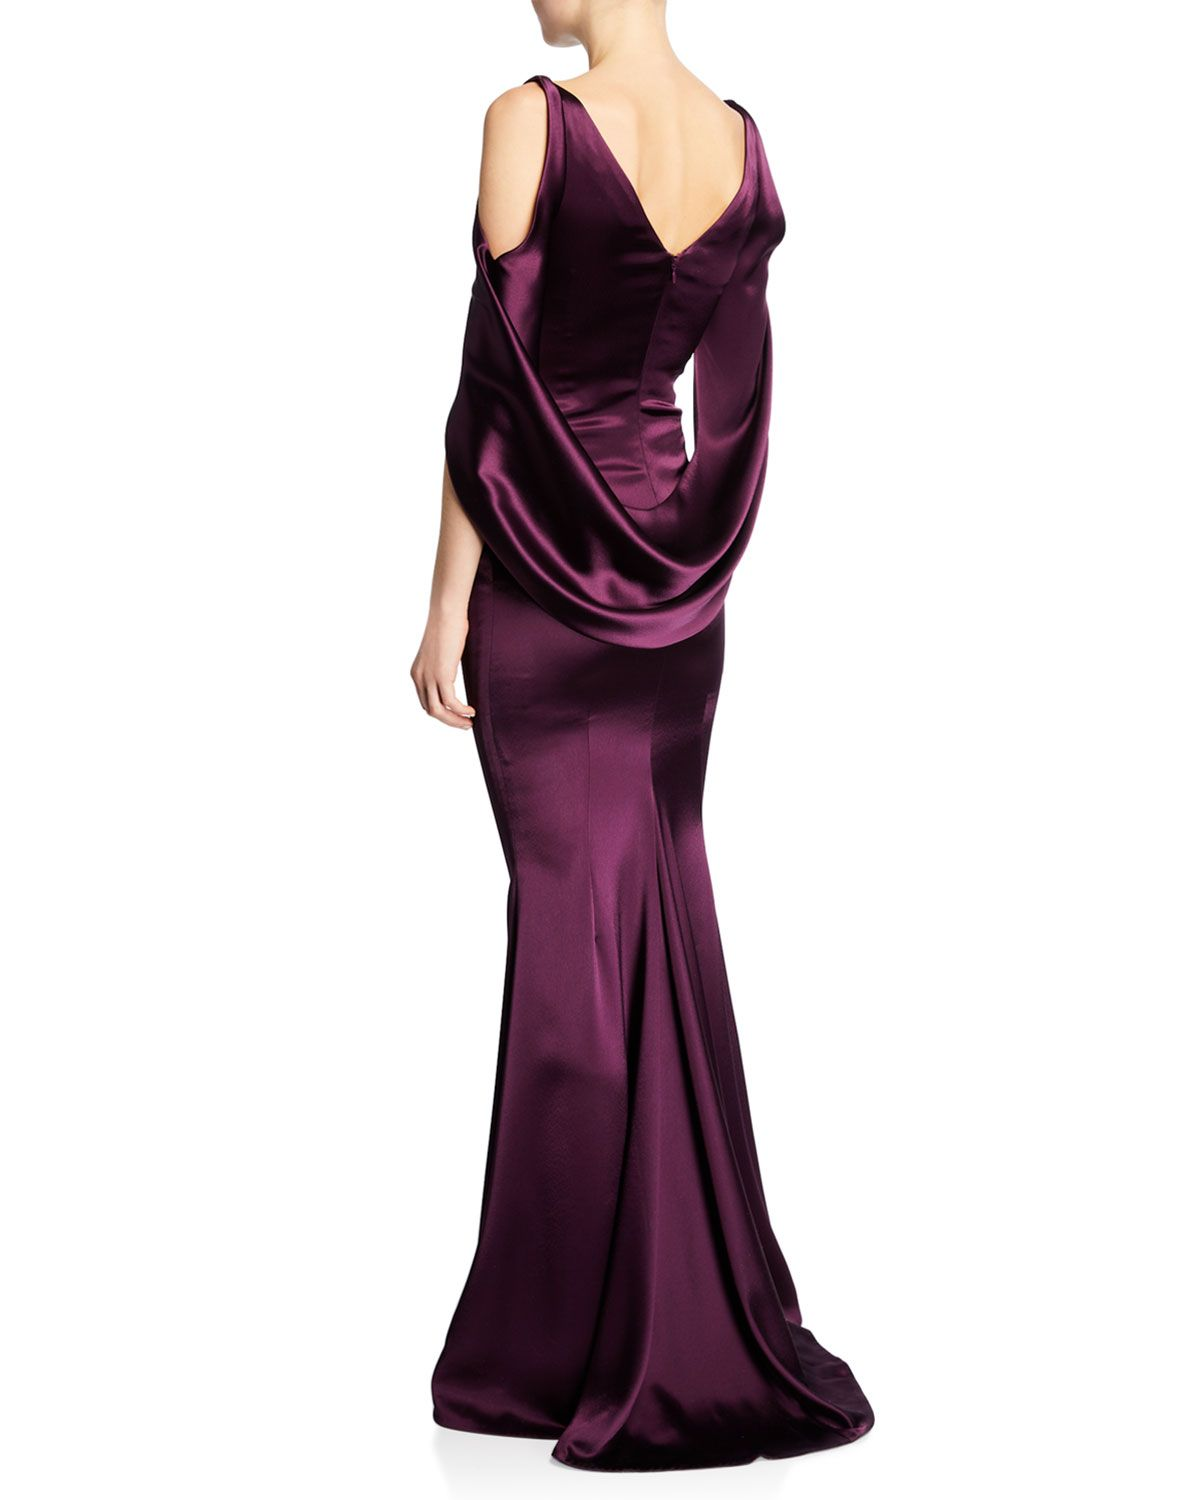 Talbot Runhof Ponceau High Neck Draped Bodice Shiny Matte Crepe Satin Evening Gown Satin Evening Gown Evening Gowns Fashion [ 1500 x 1200 Pixel ]